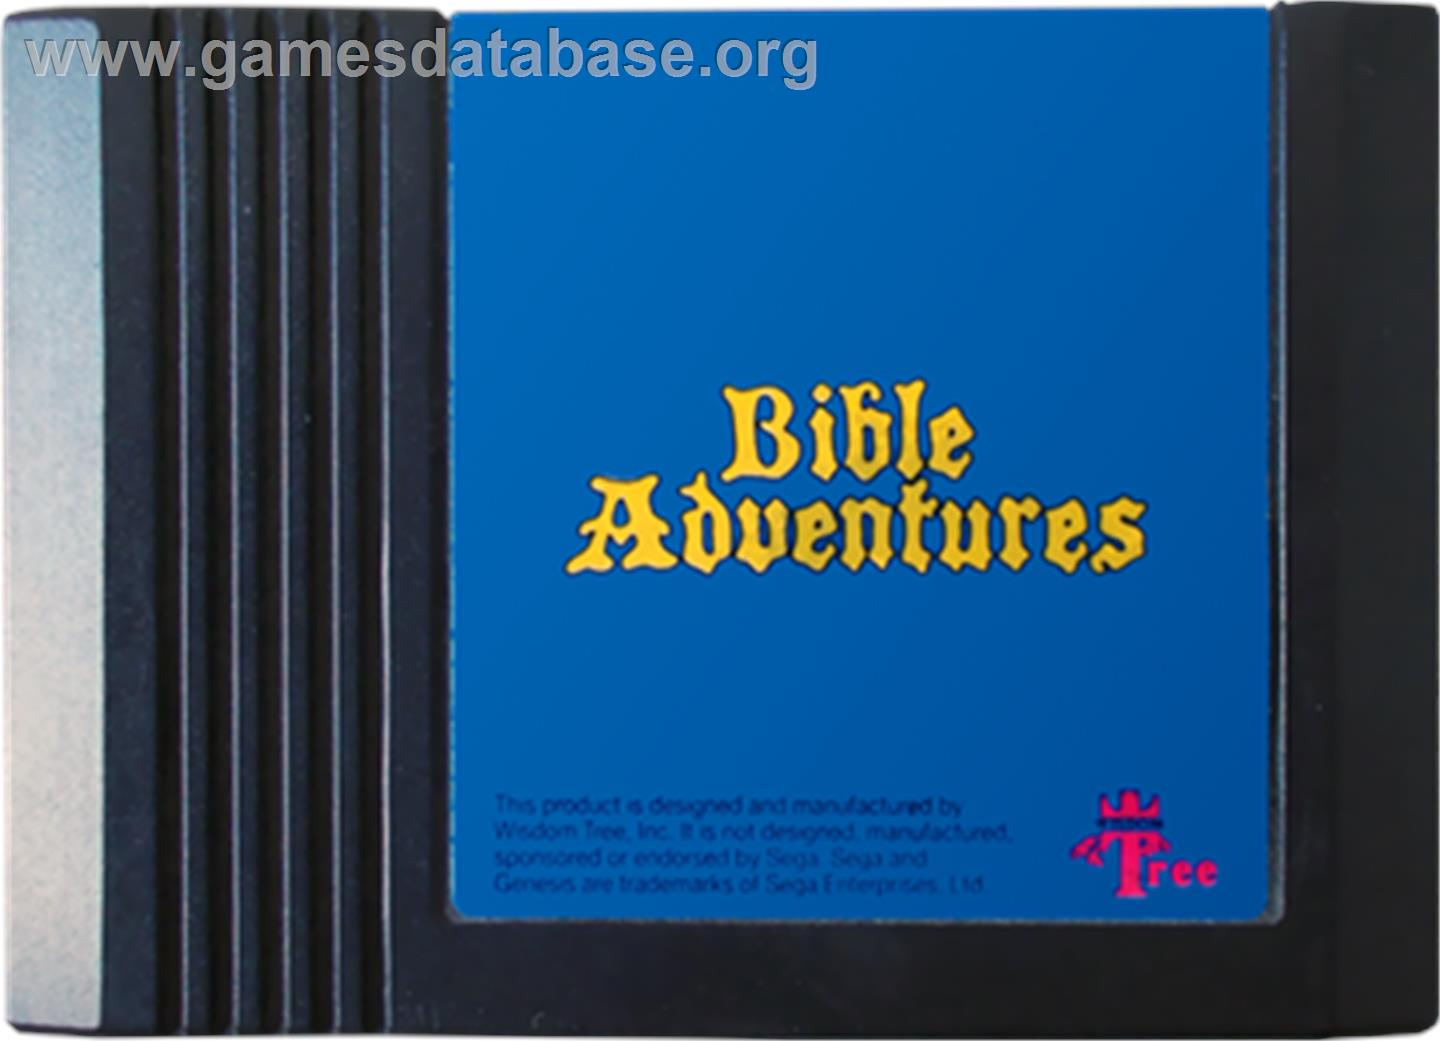 Bible Adventures - Sega Genesis - Artwork - Cartridge